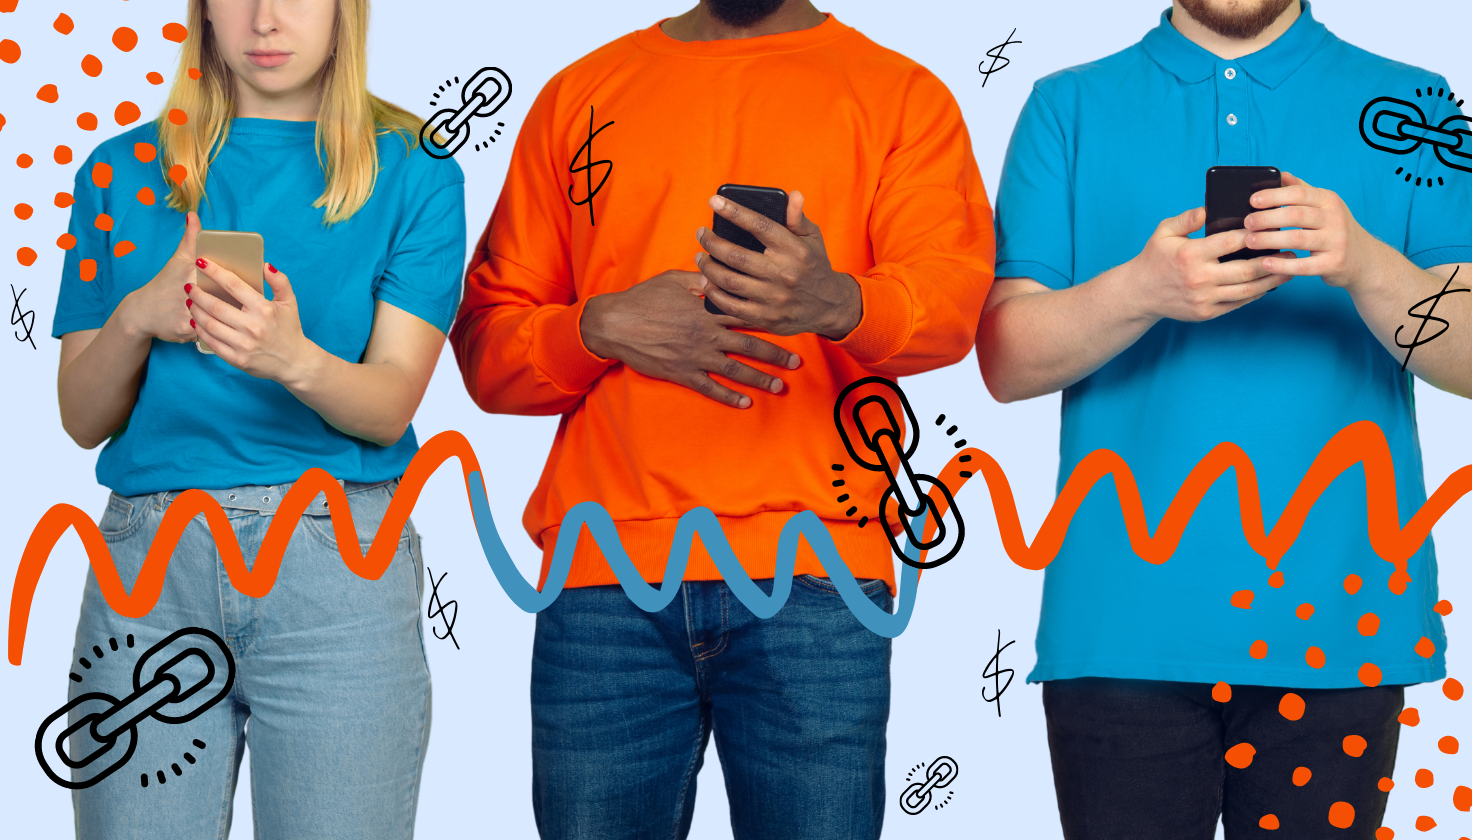 Advancements in Attribution & Tracking Influencer ROI